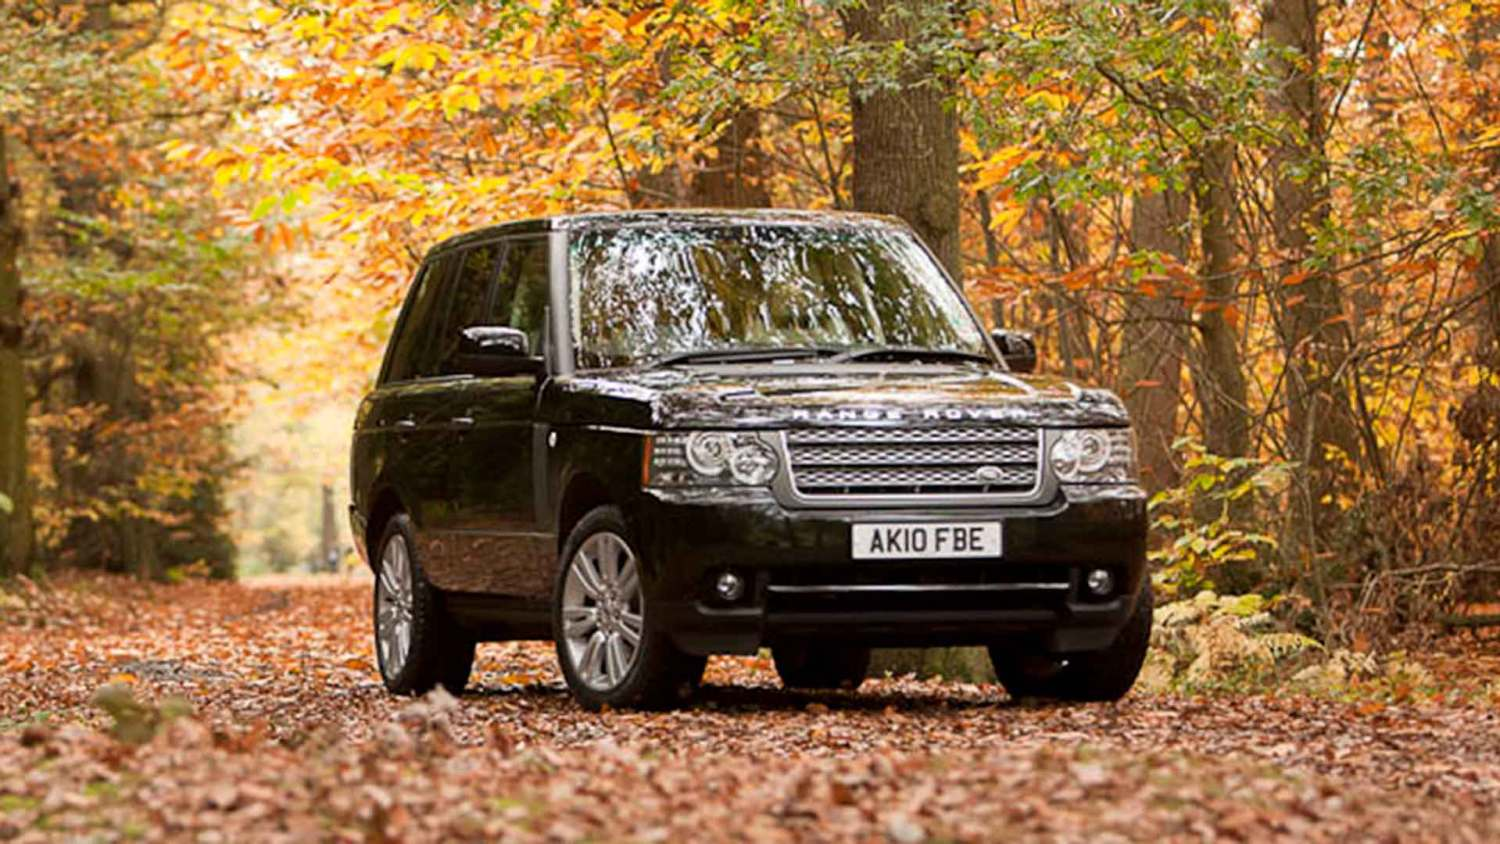 The UK's most commonly stolen cars